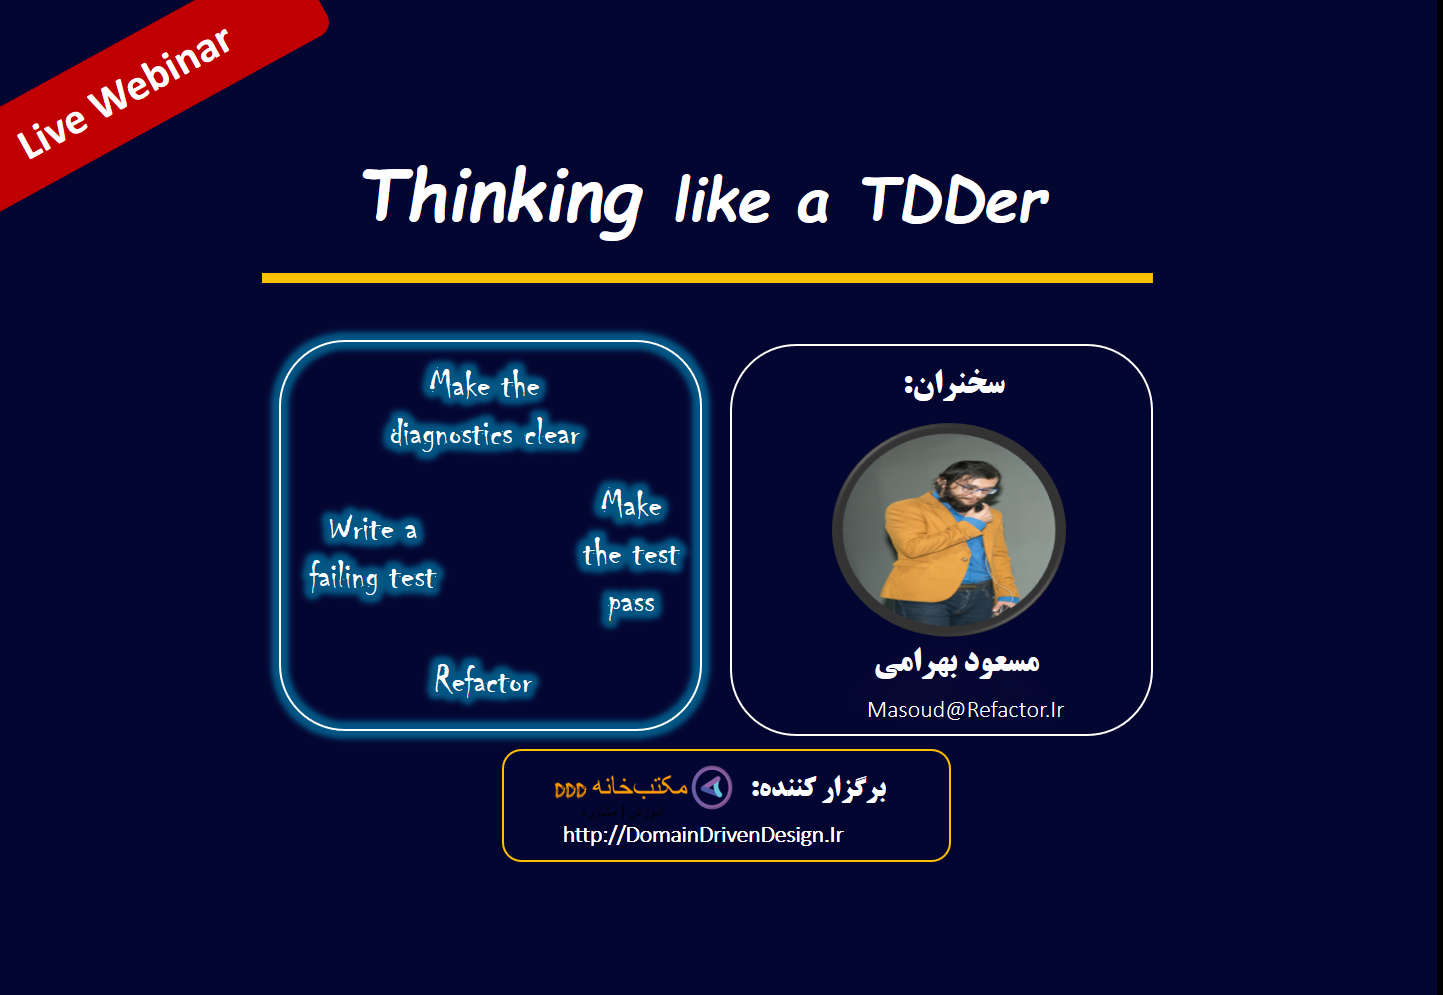 Thinking like a TDDer